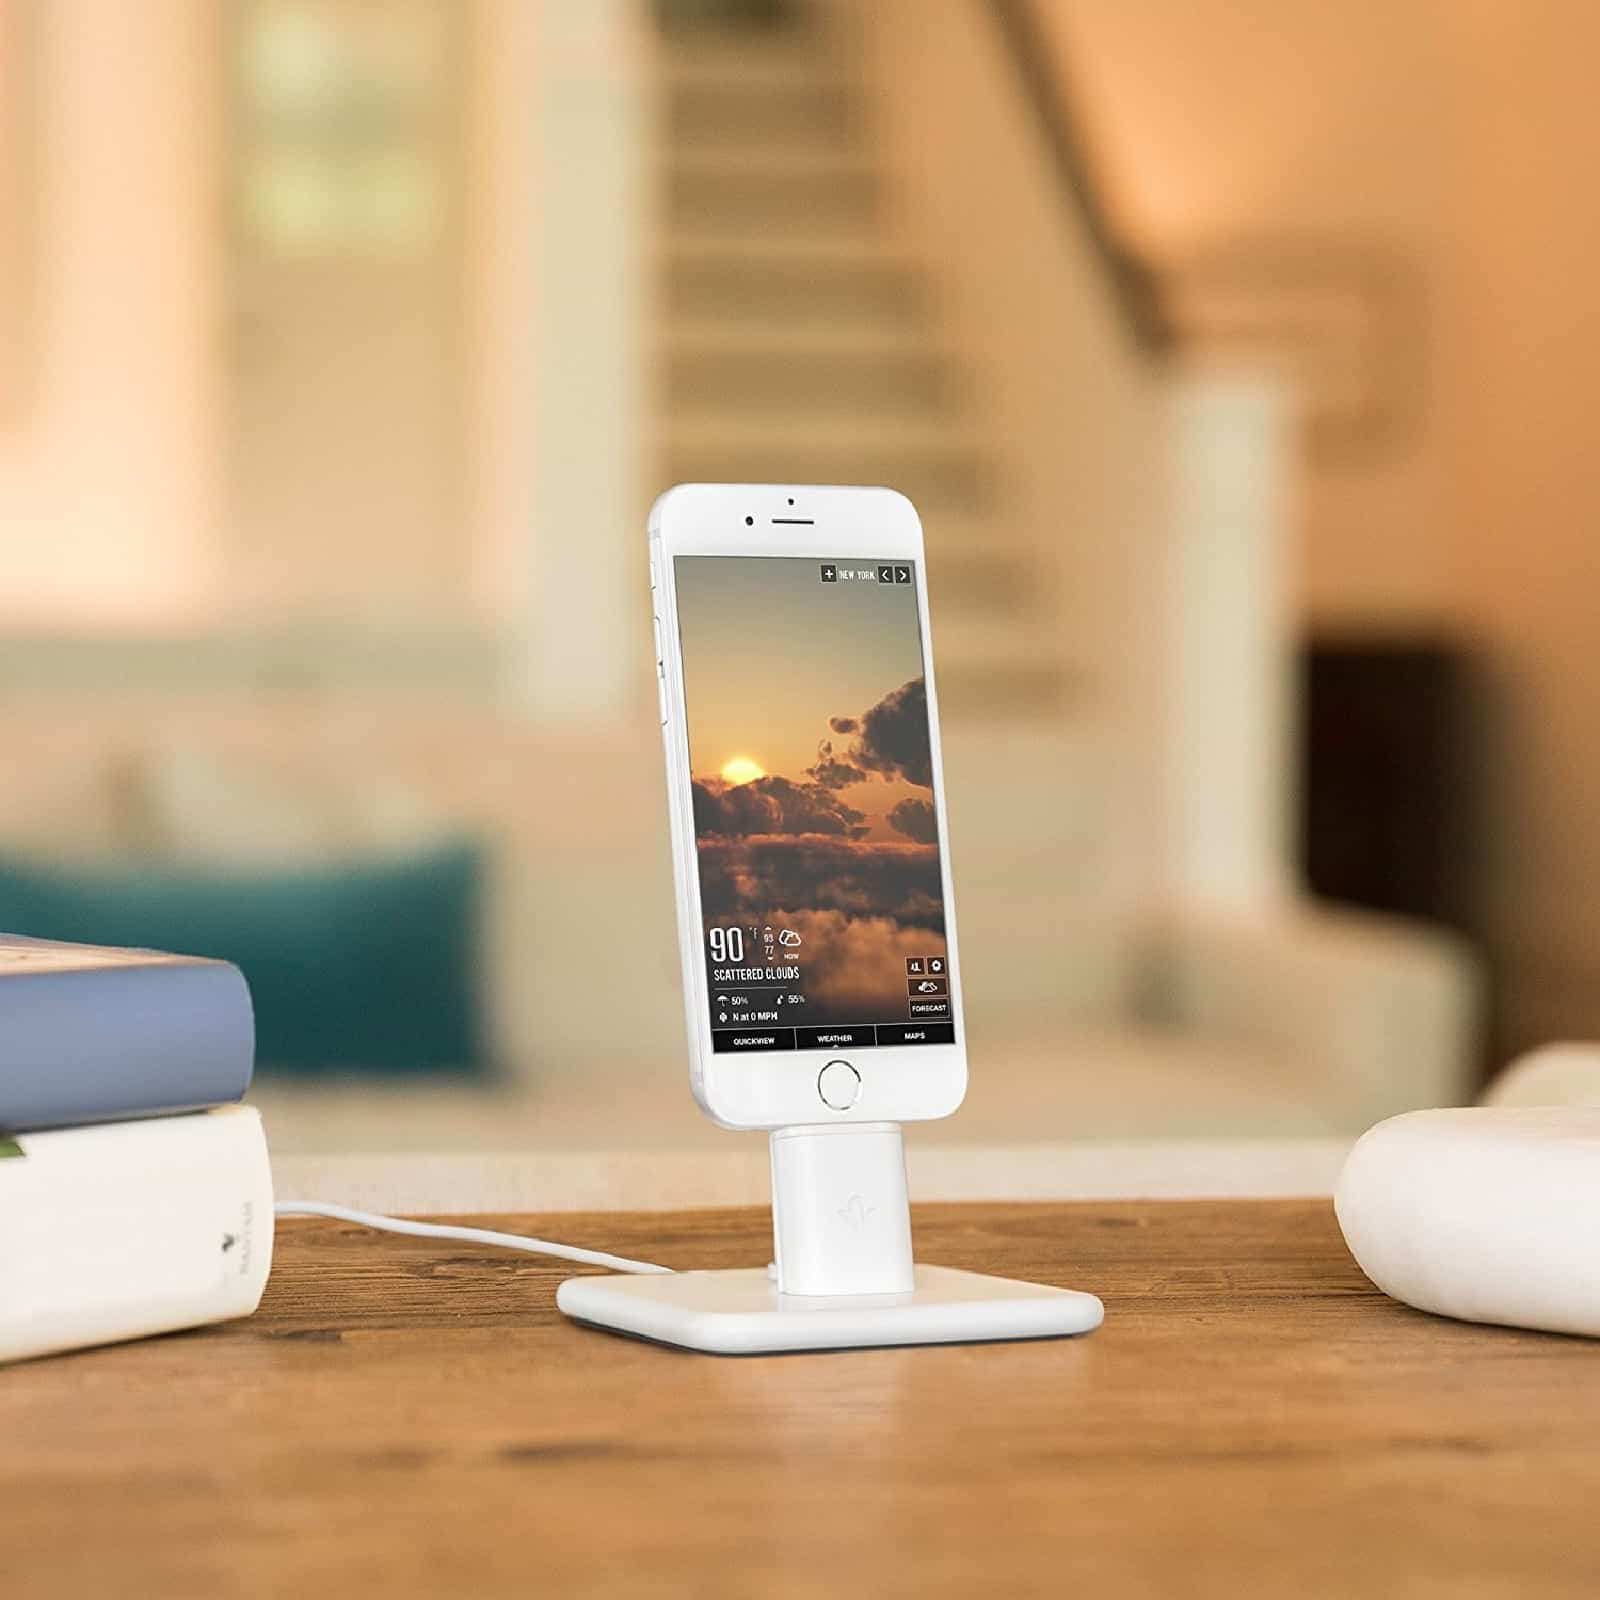 Desk iPhone docks are very convenient.